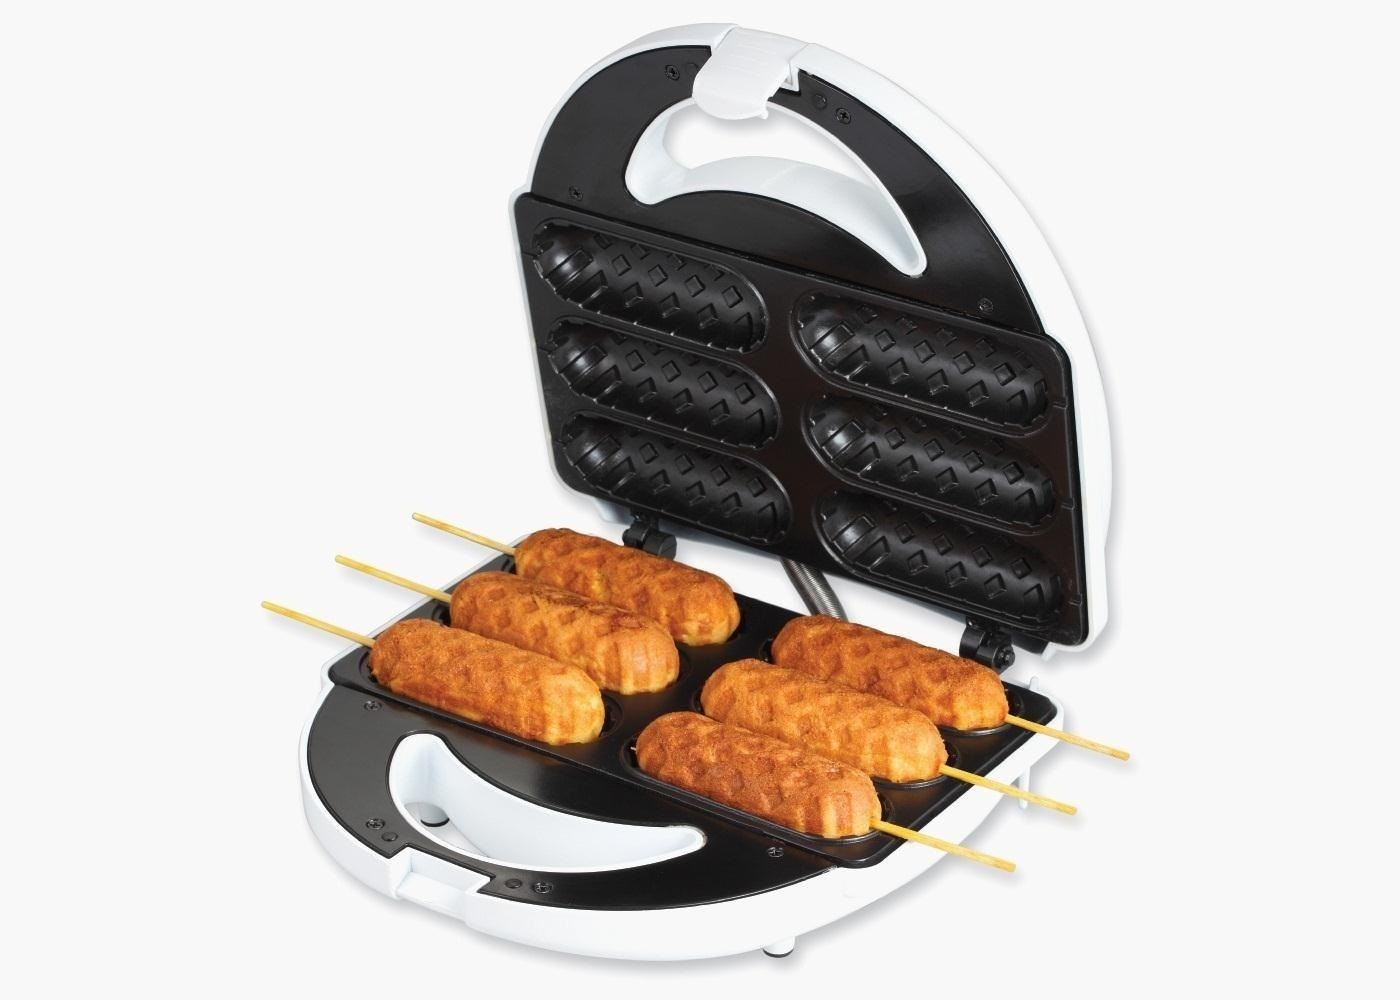 This Is Quite Possibly the Best Meal-On-A-Stick Ever Invented